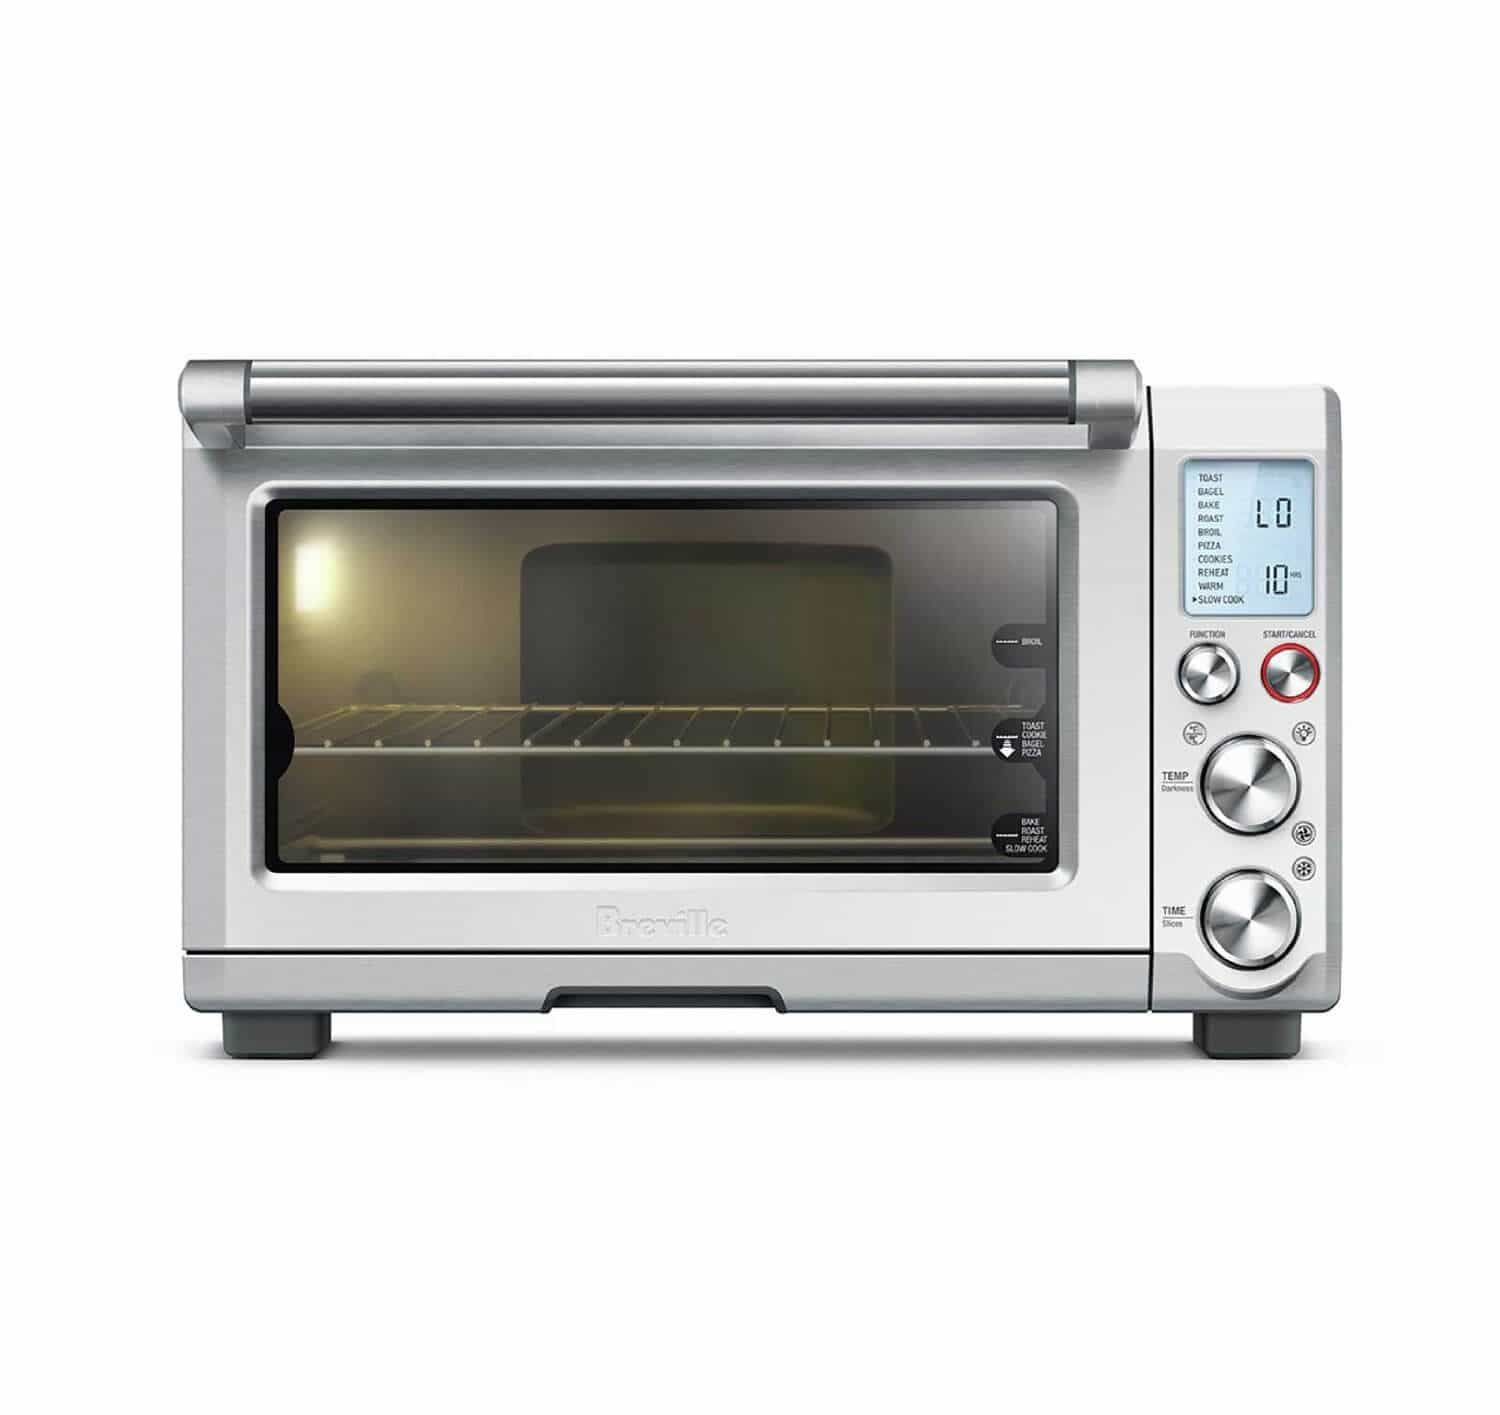 Breville Smart Oven Pro Review & Giveaway | Oven, Giveaway and ...